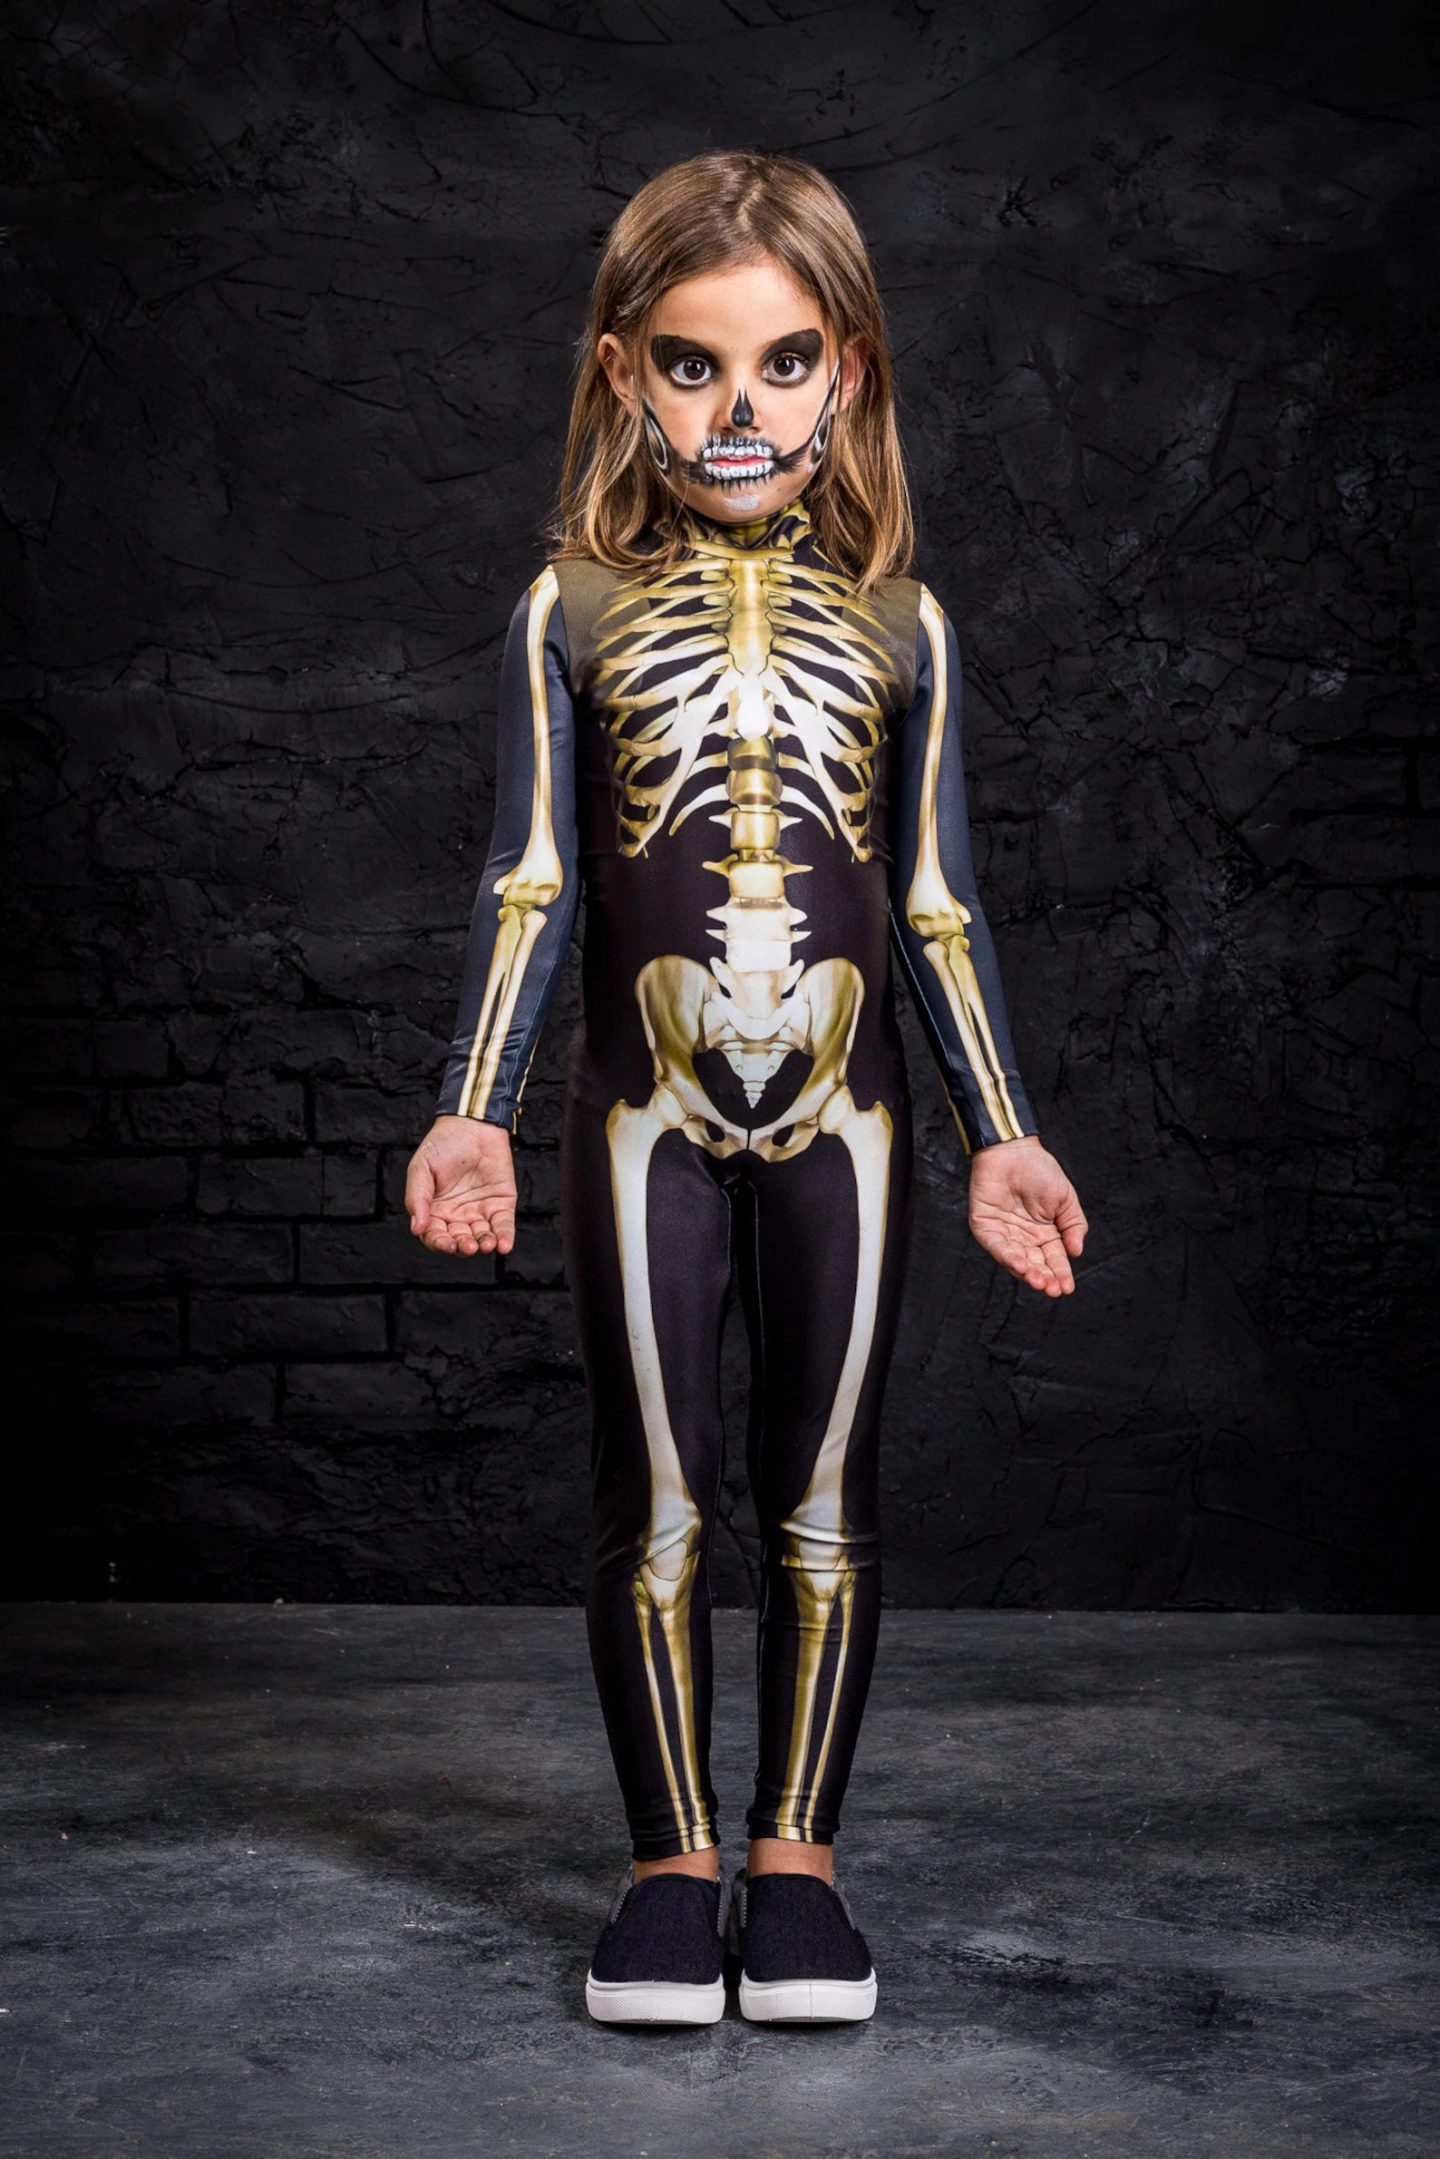 Skeleton Halloween costume for toddlers